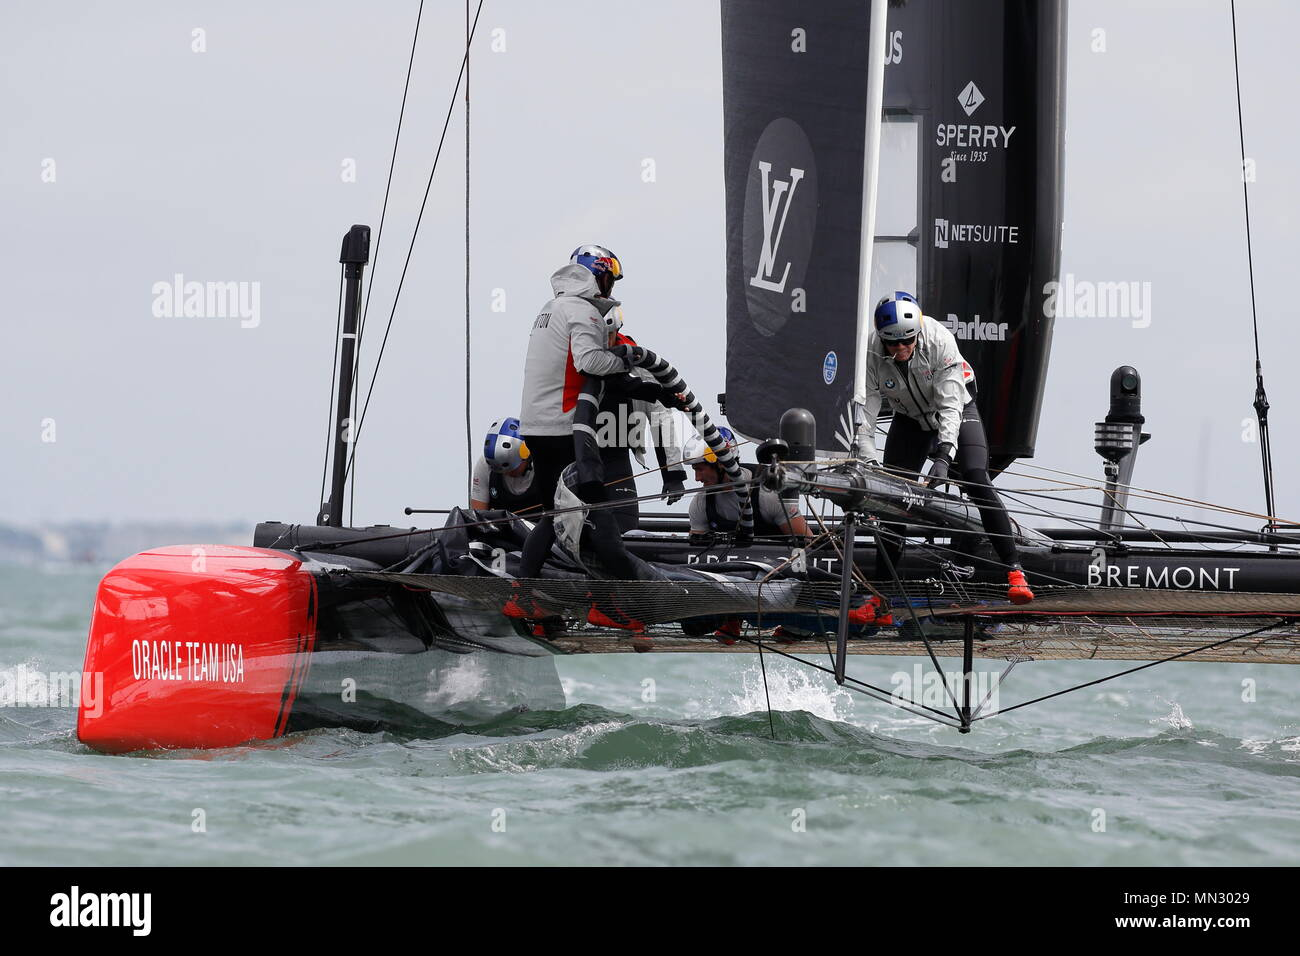 PORTSMOUTH, ENGLAND - JULY 24: The Emirates Team New Zealand yacht in race trim on July 24, 2016 in Portsmouth, England. - Stock Image